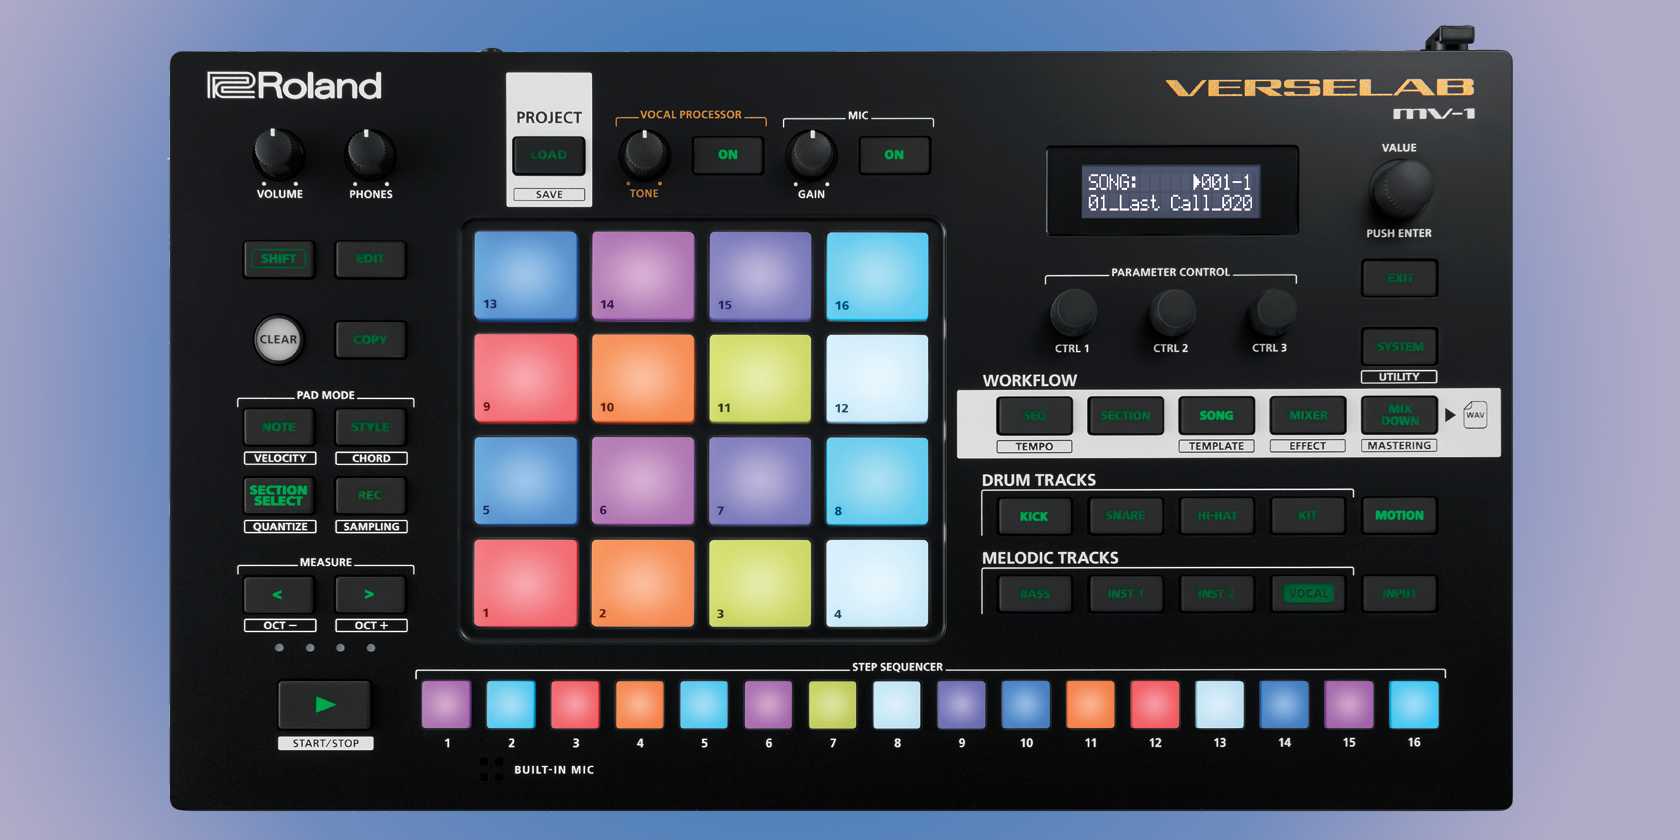 Roland Makes Noise at CES 2021 With New All-in-One Workstation